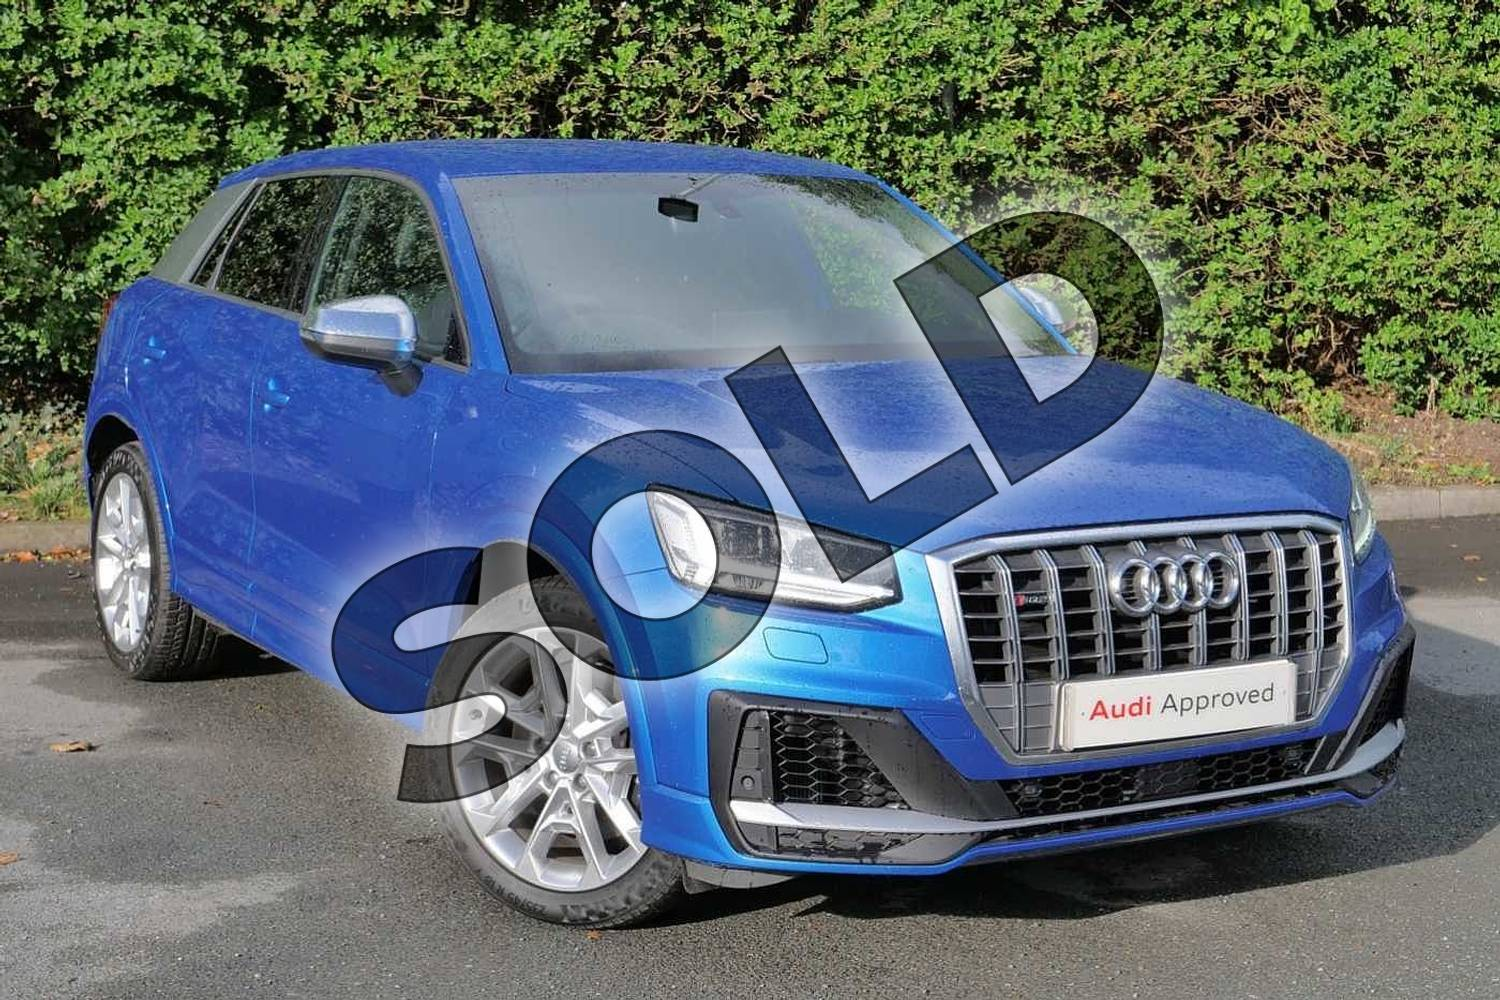 2020 Audi Q2 Estate SQ2 Quattro 5dr S Tronic in Ara Blue Crystal Effect at Worcester Audi